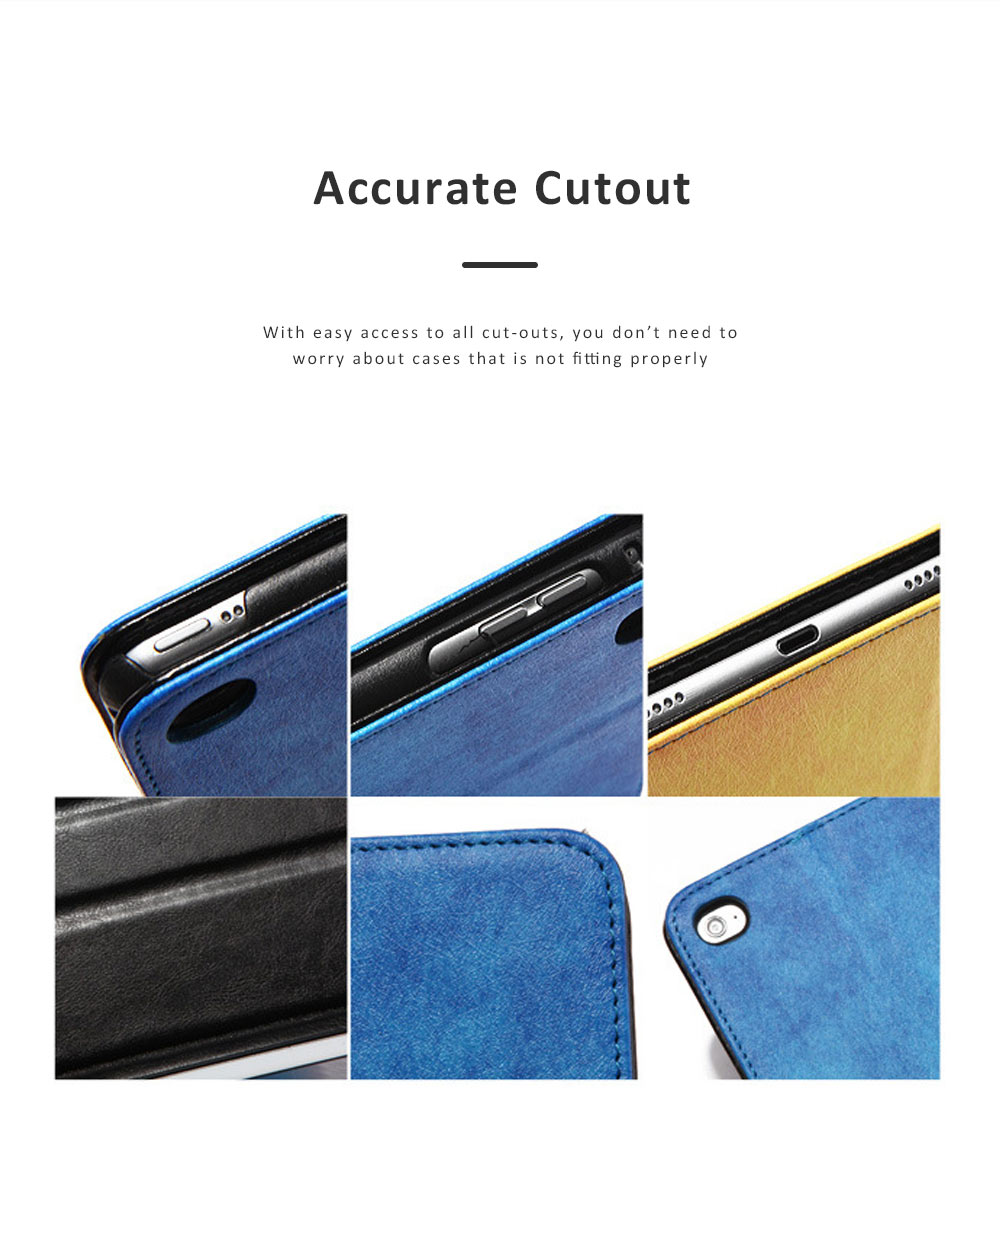 Smart Cover PU Leather Protective Case with Magnetic Closure Slim Standing Protector for New iPad, ipad Air, mini 5 4 3 2 1 3